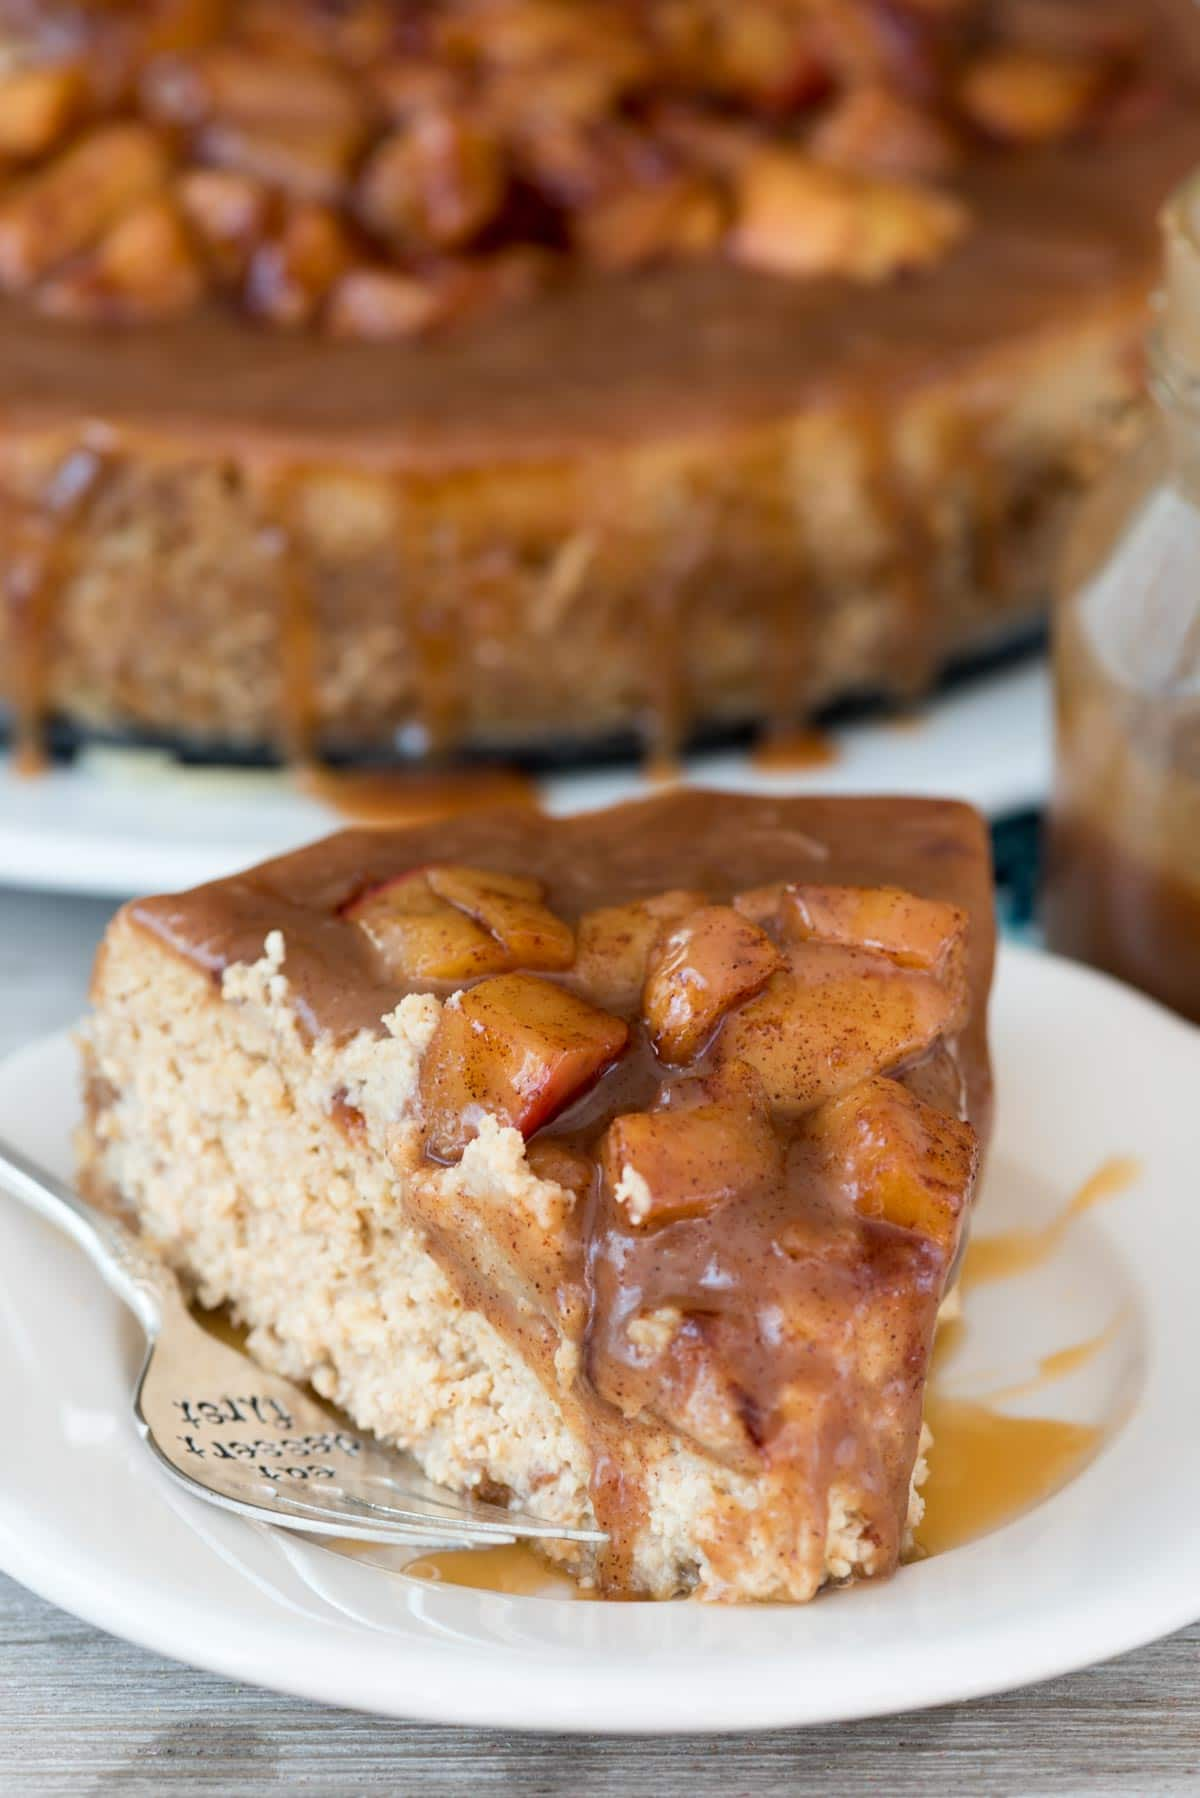 Caramel Apple Cheesecake with Nilla Wafer Crust